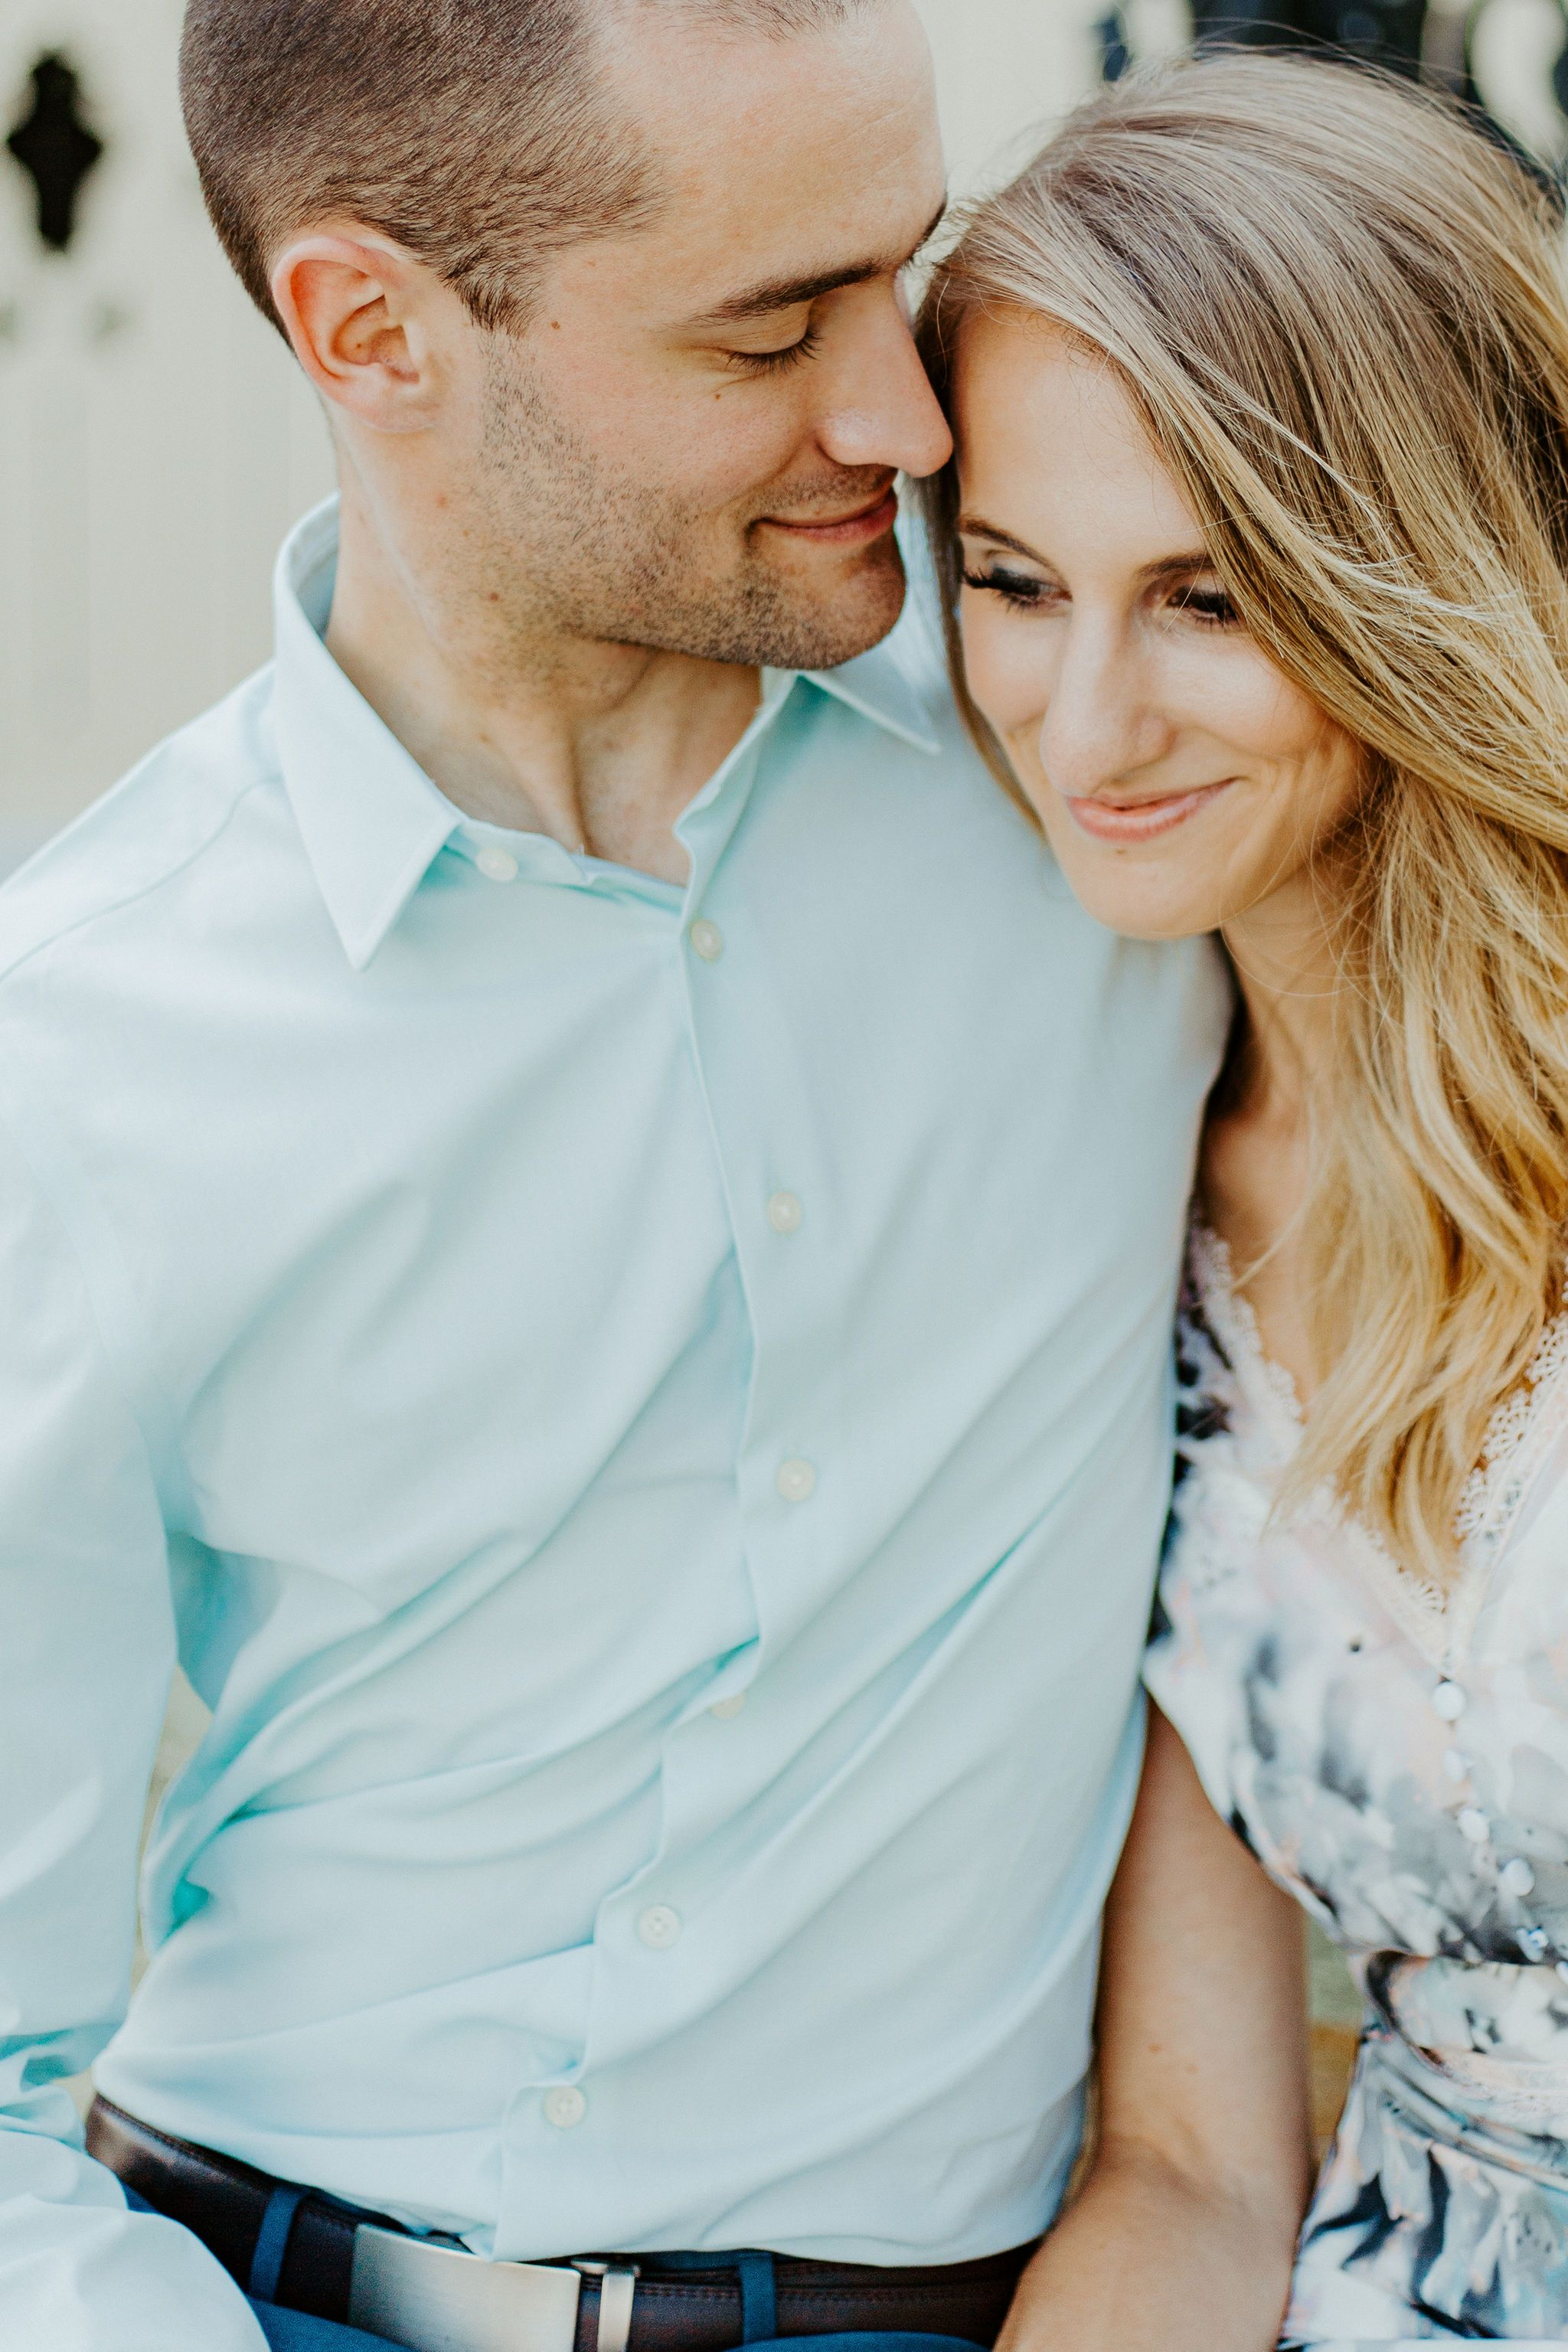 romantic chautauqua institution engagement katie graham photography traveling destination wedding photographer